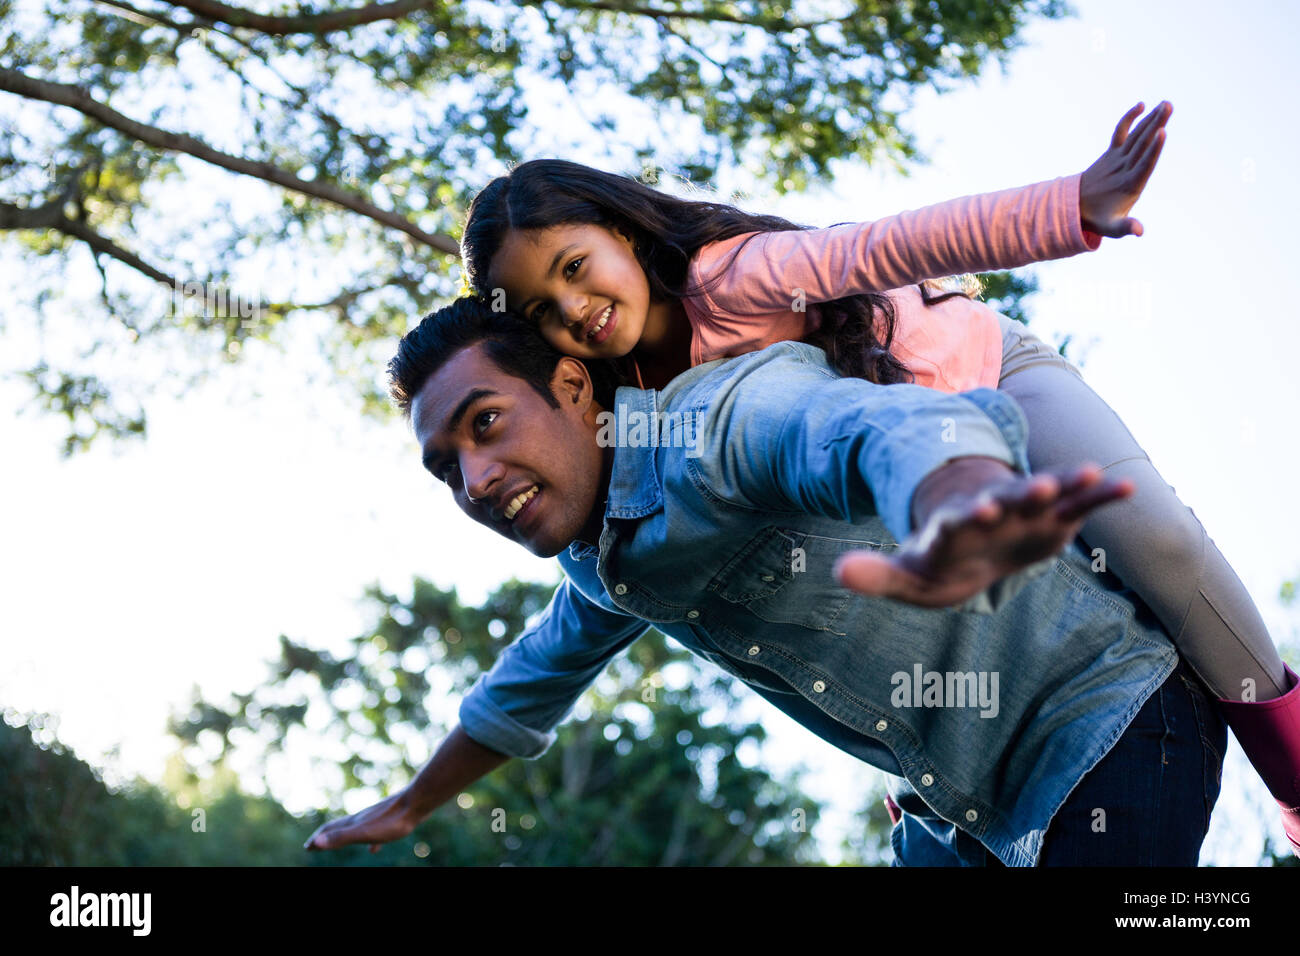 Father giving piggyback ride to his daughter - Stock Image